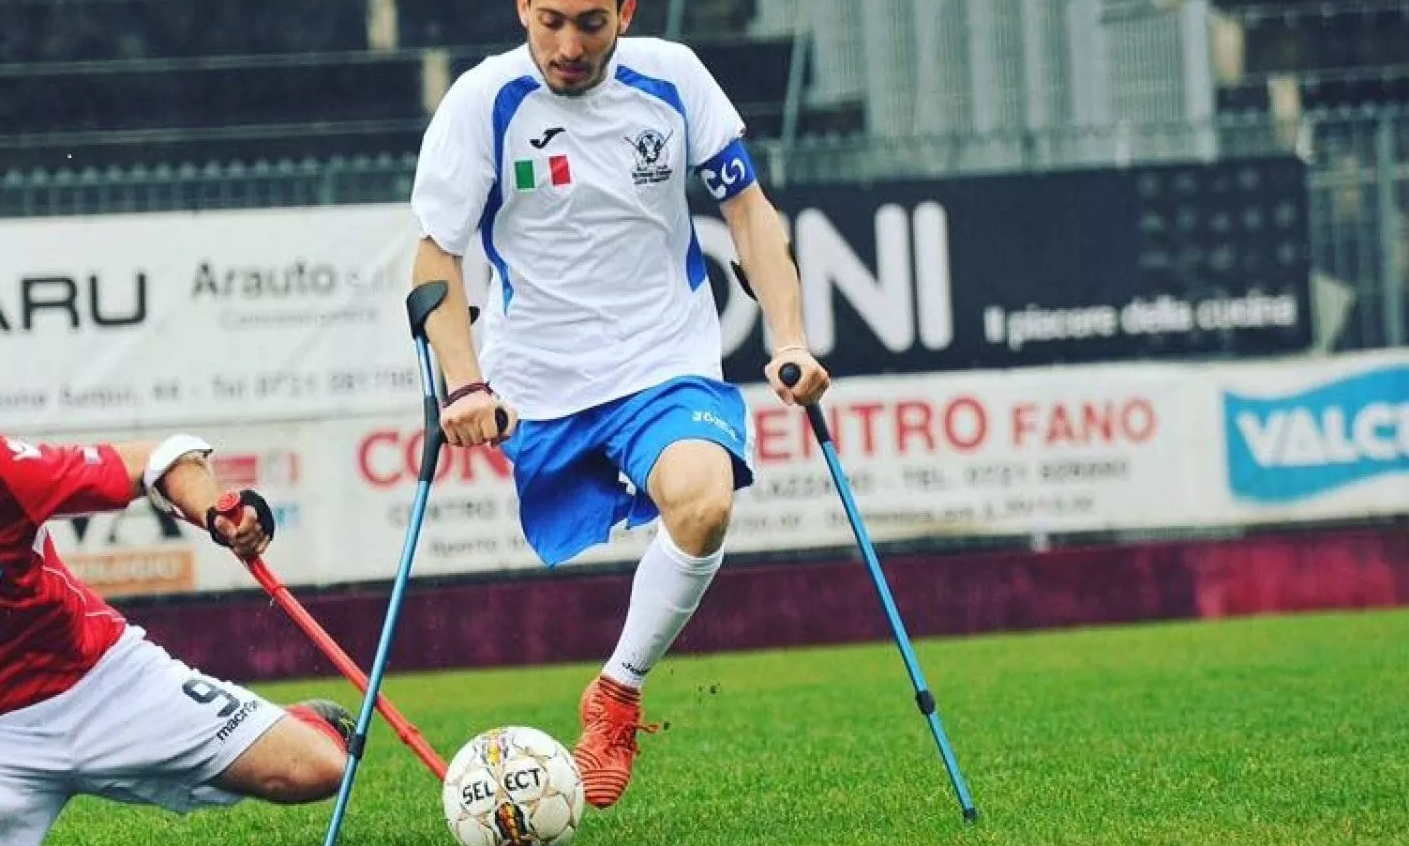 Un calcio sociale all'inclusione